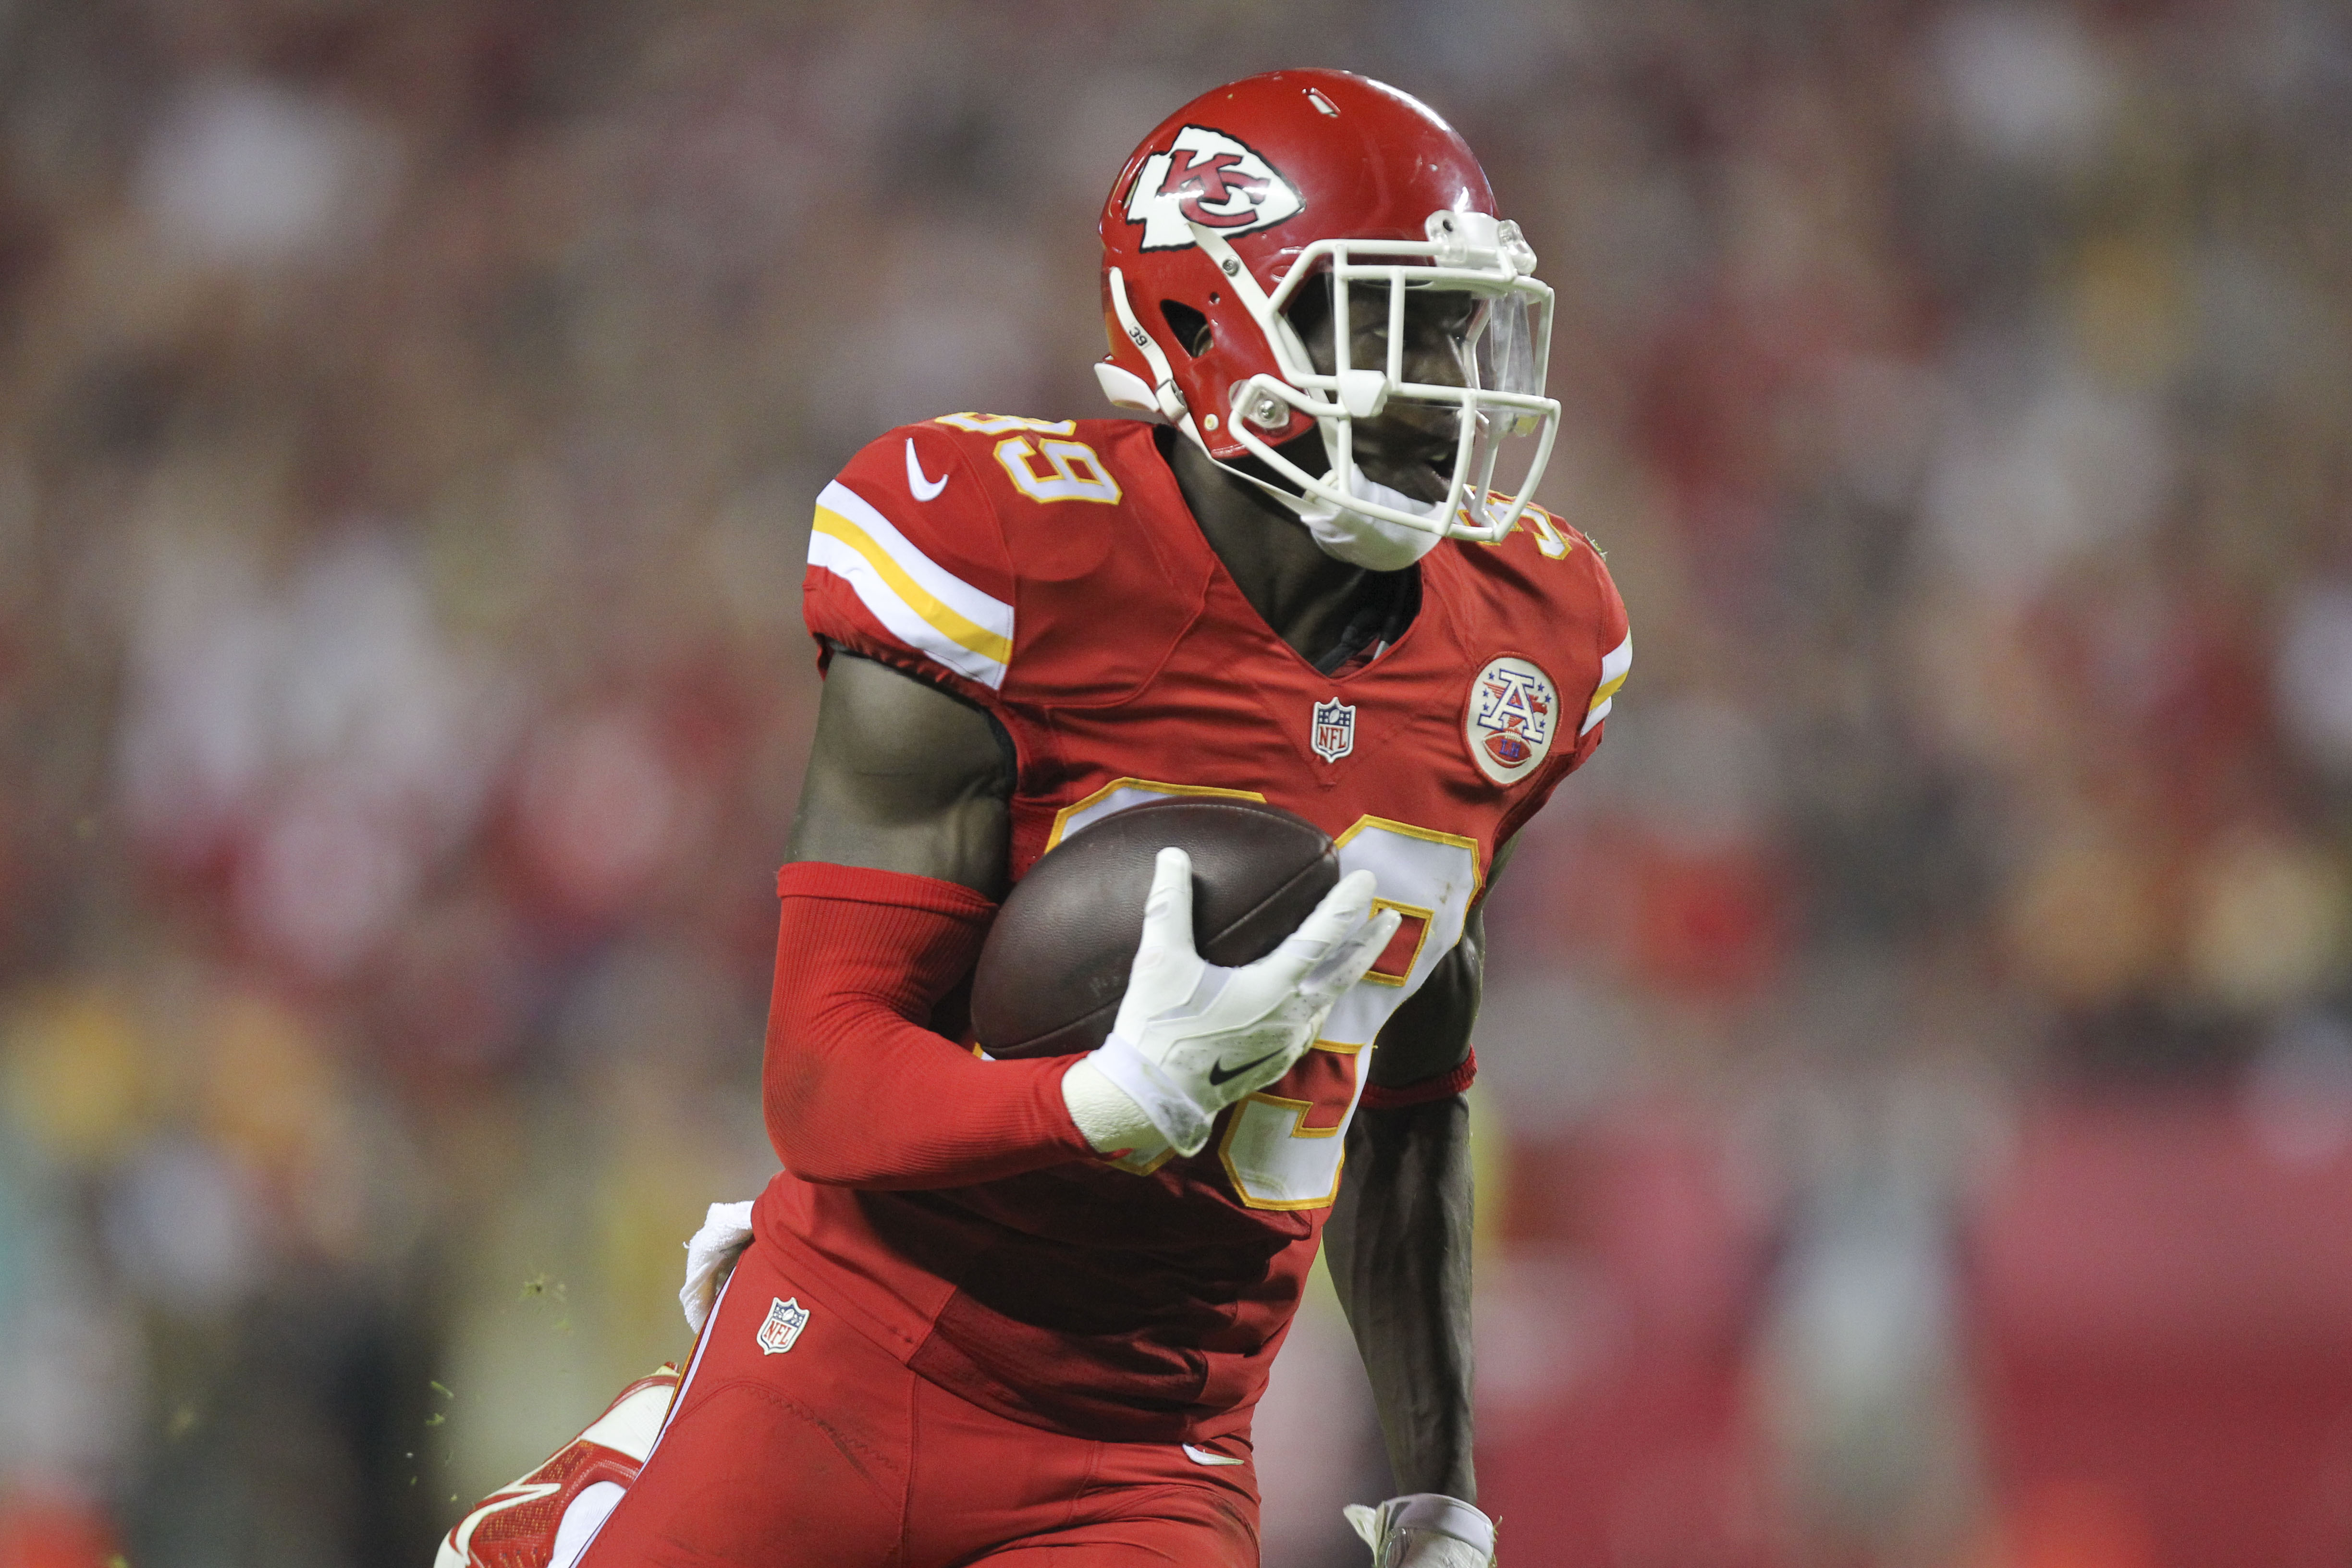 Kansas City Chiefs free safety Husain Abdullah carries the ball after intercepting a pass during the fourth quarter of an NFL football game against the New England Patriots Sept. 29, 2014, in Kansas City, Mo.